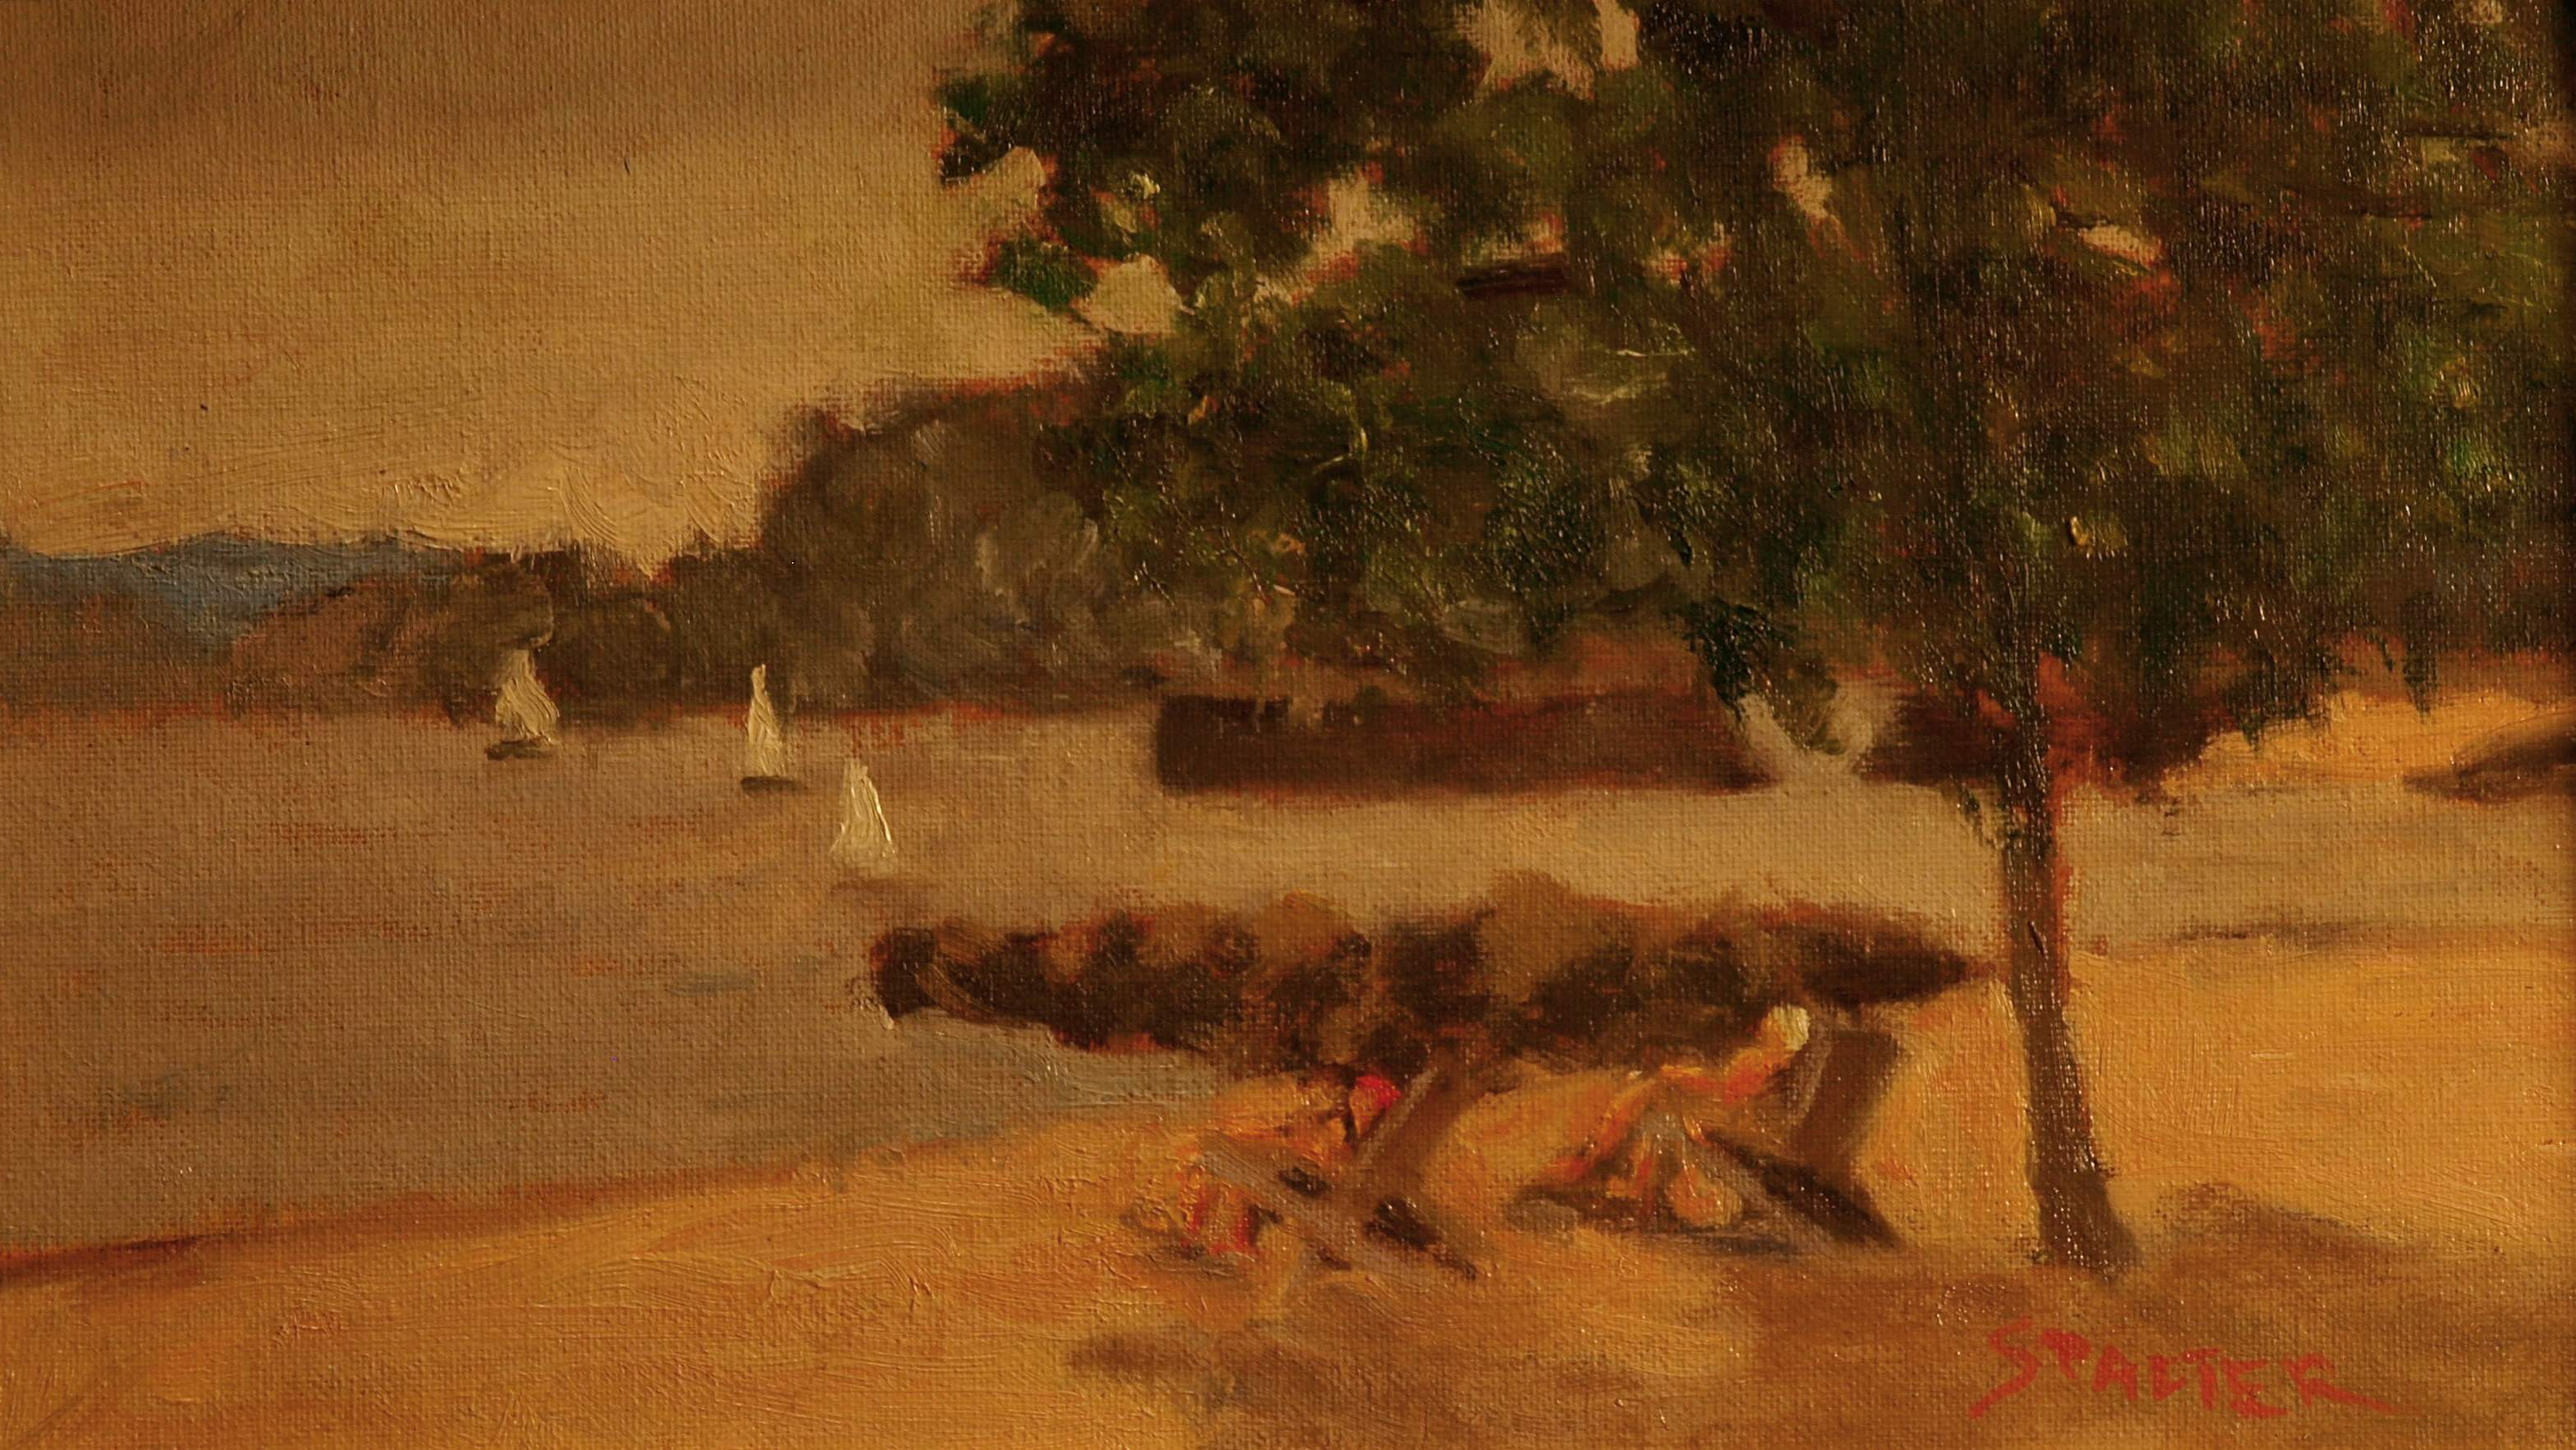 Sailboats Near Pear Tree Point, Oil on Canvas on Panel, 8 x 14 Inches, by Richard Stalter, $225